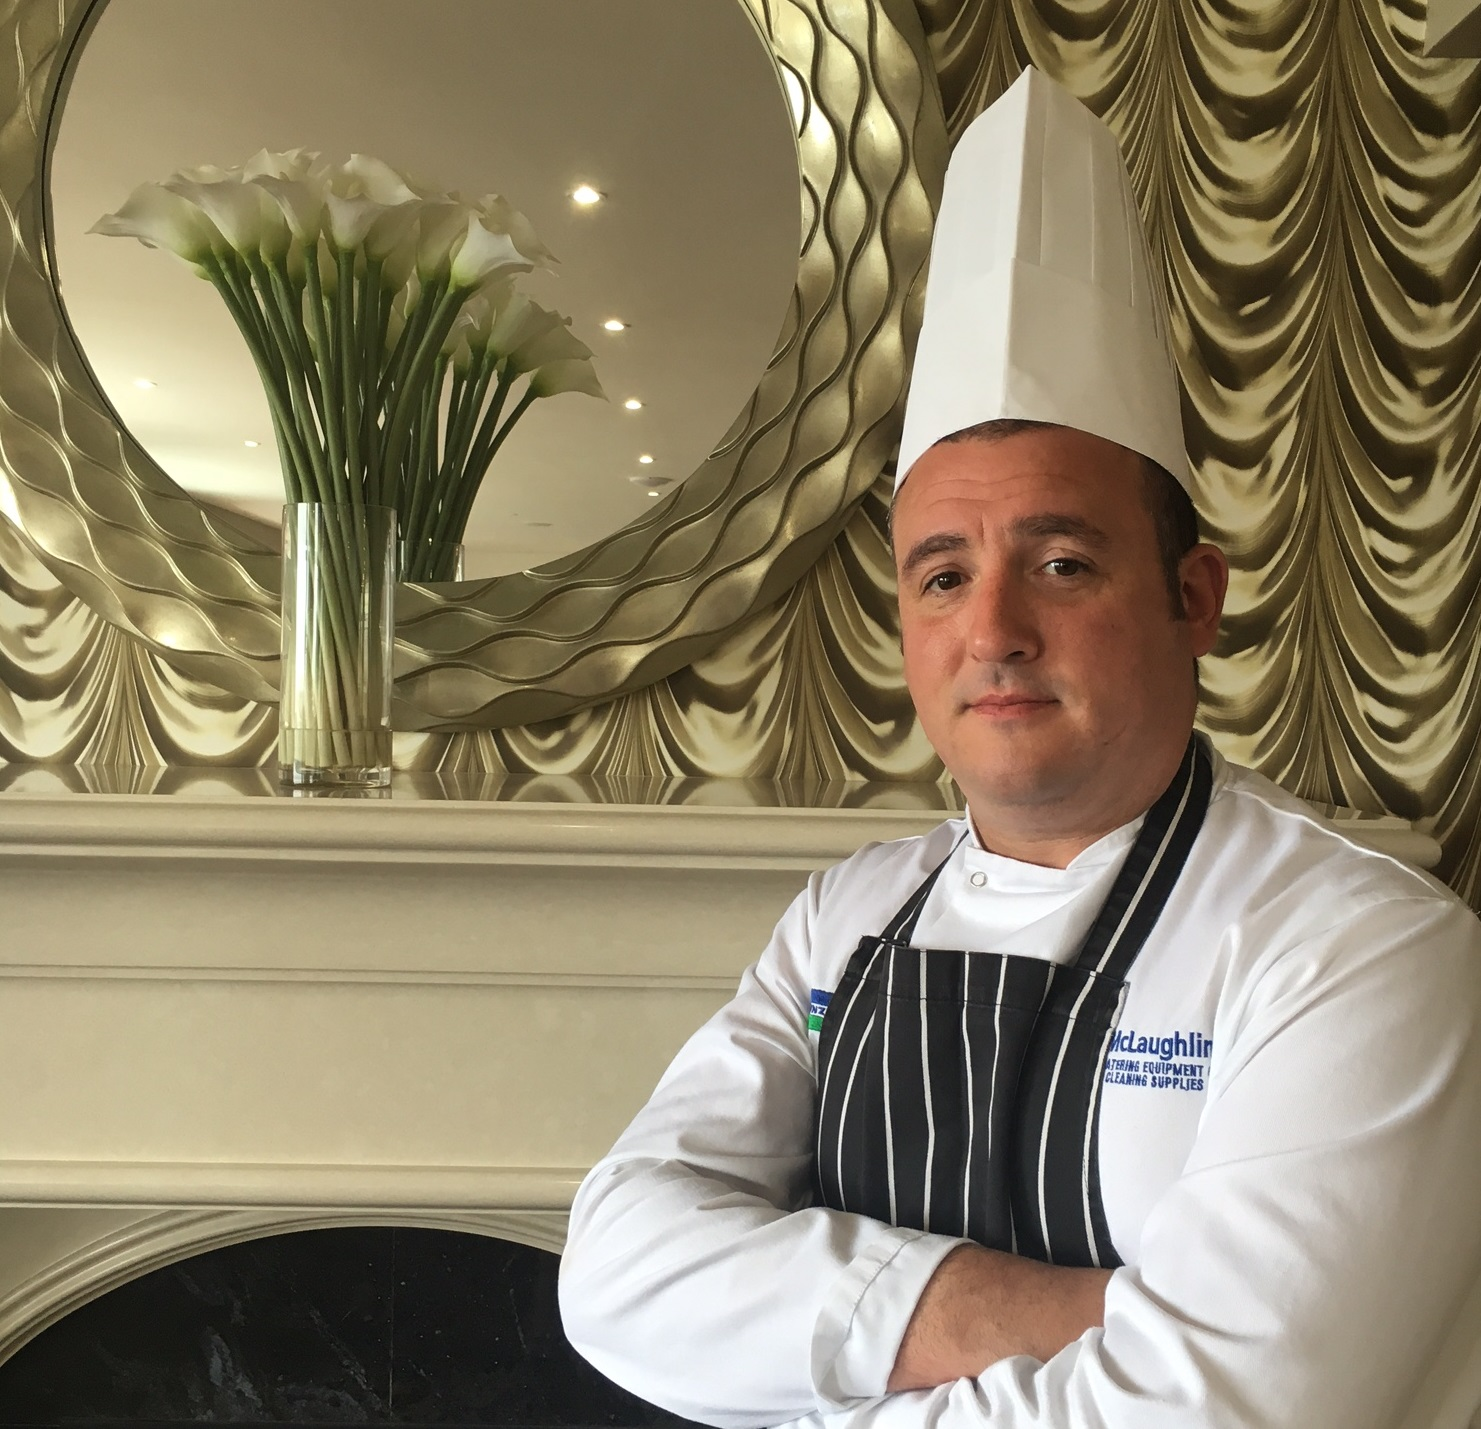 Meet Anthony – Our Executive Head Chef